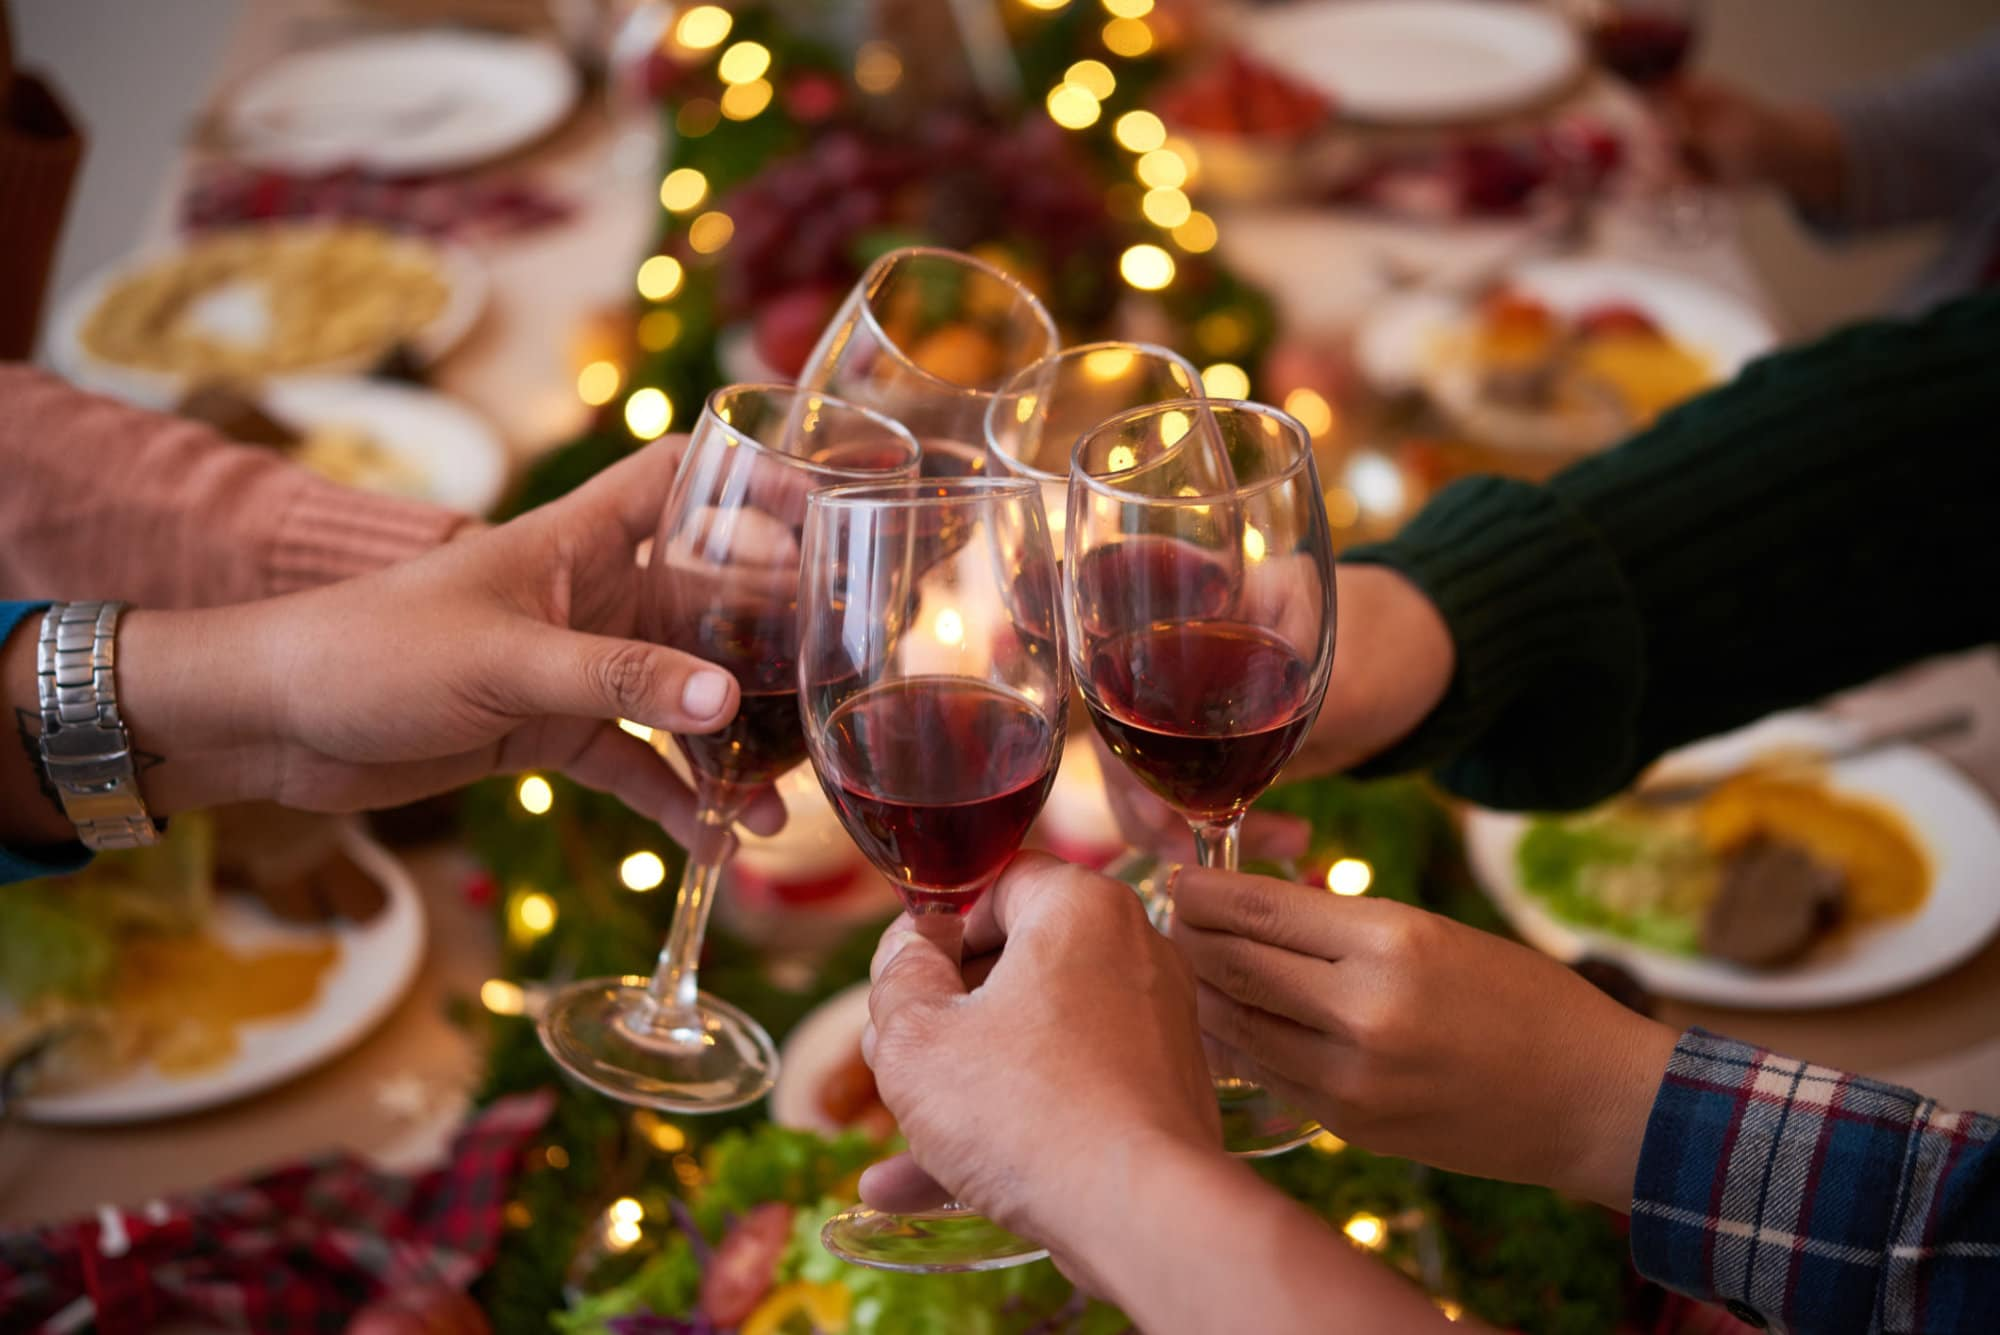 Tips On Hosting A Holiday Party In The Vegan And Gluten Free Era